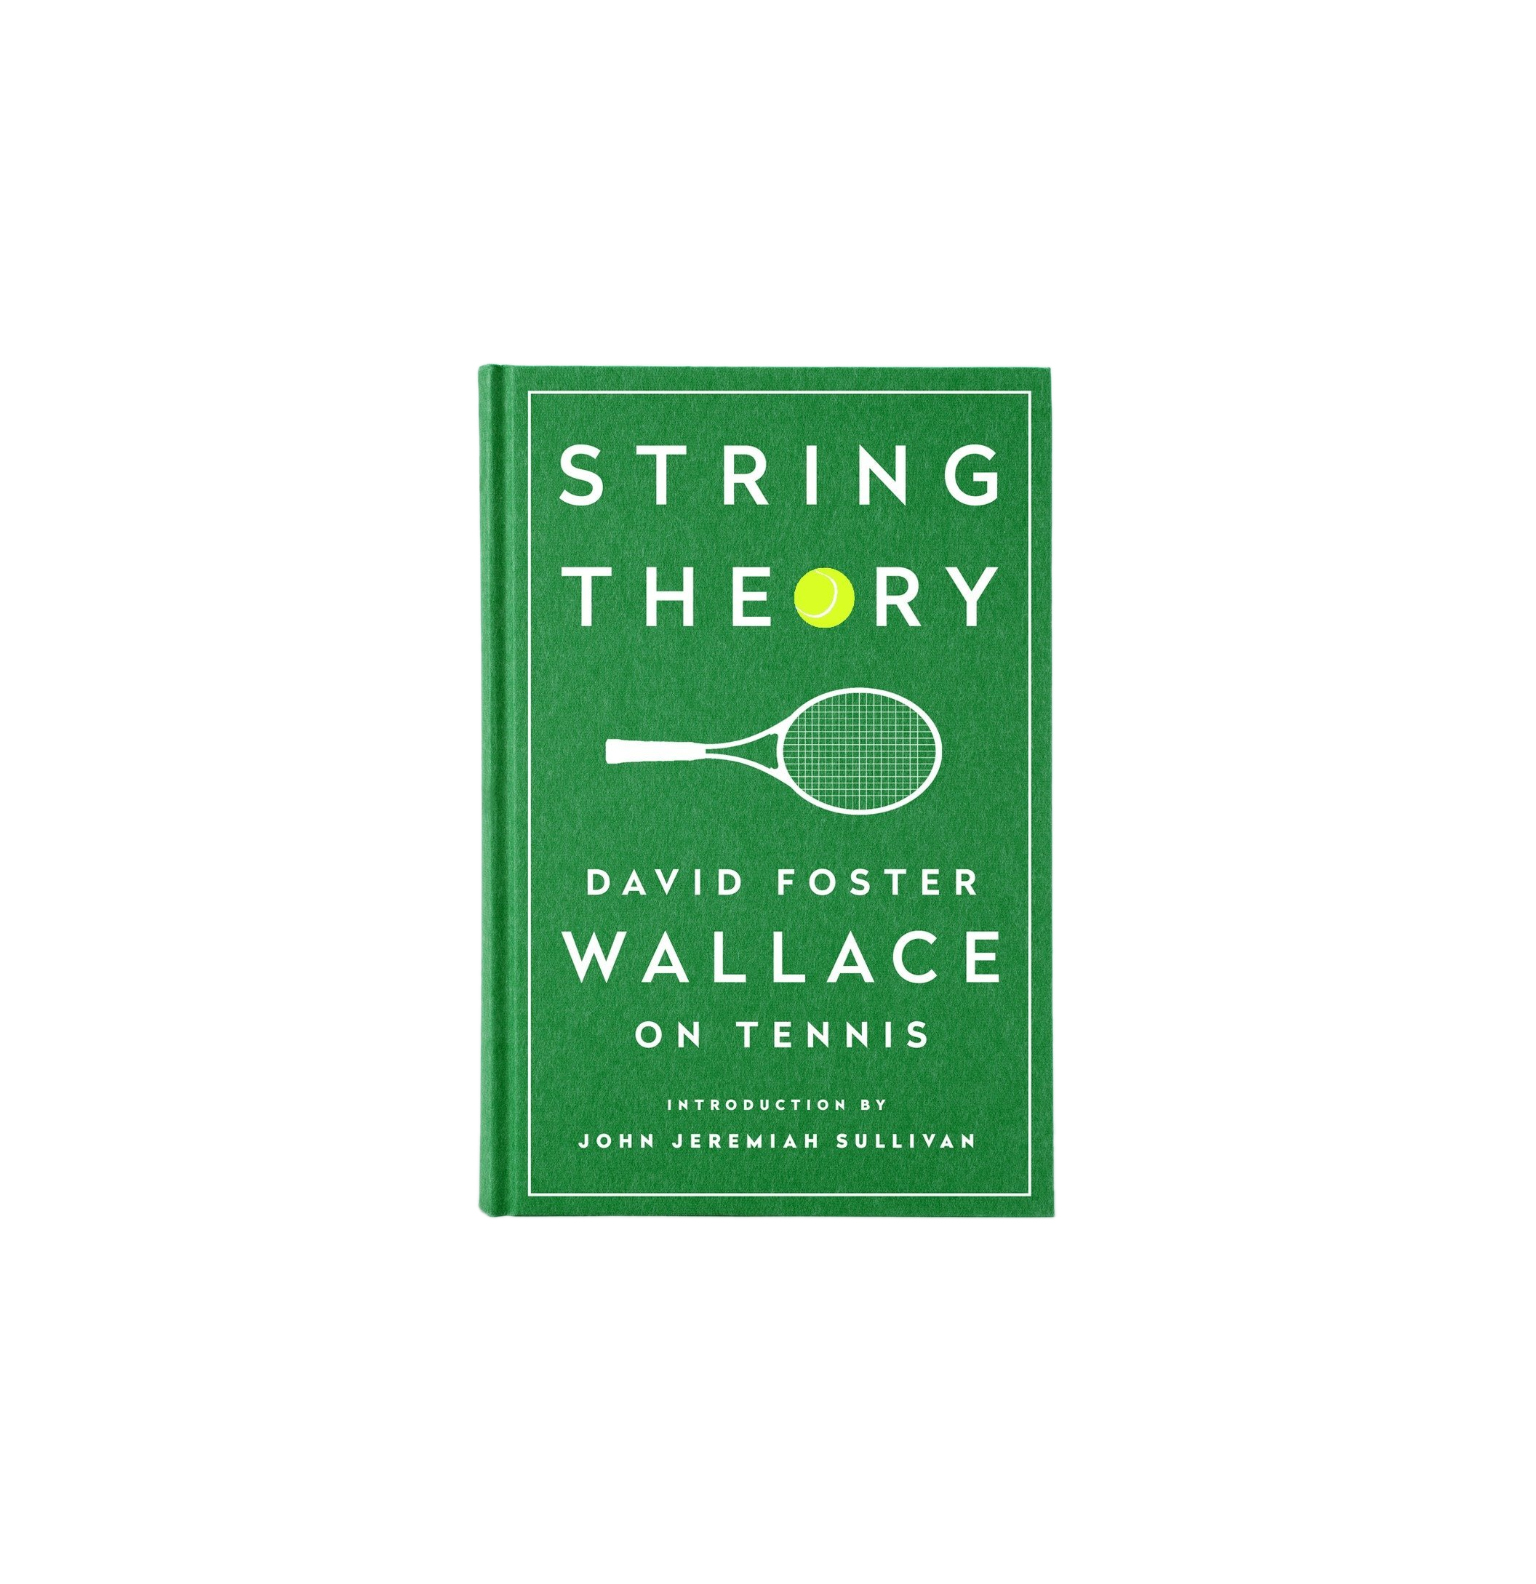 String Theory: David Foster Wallace on Tennis, by David Foster Wallace